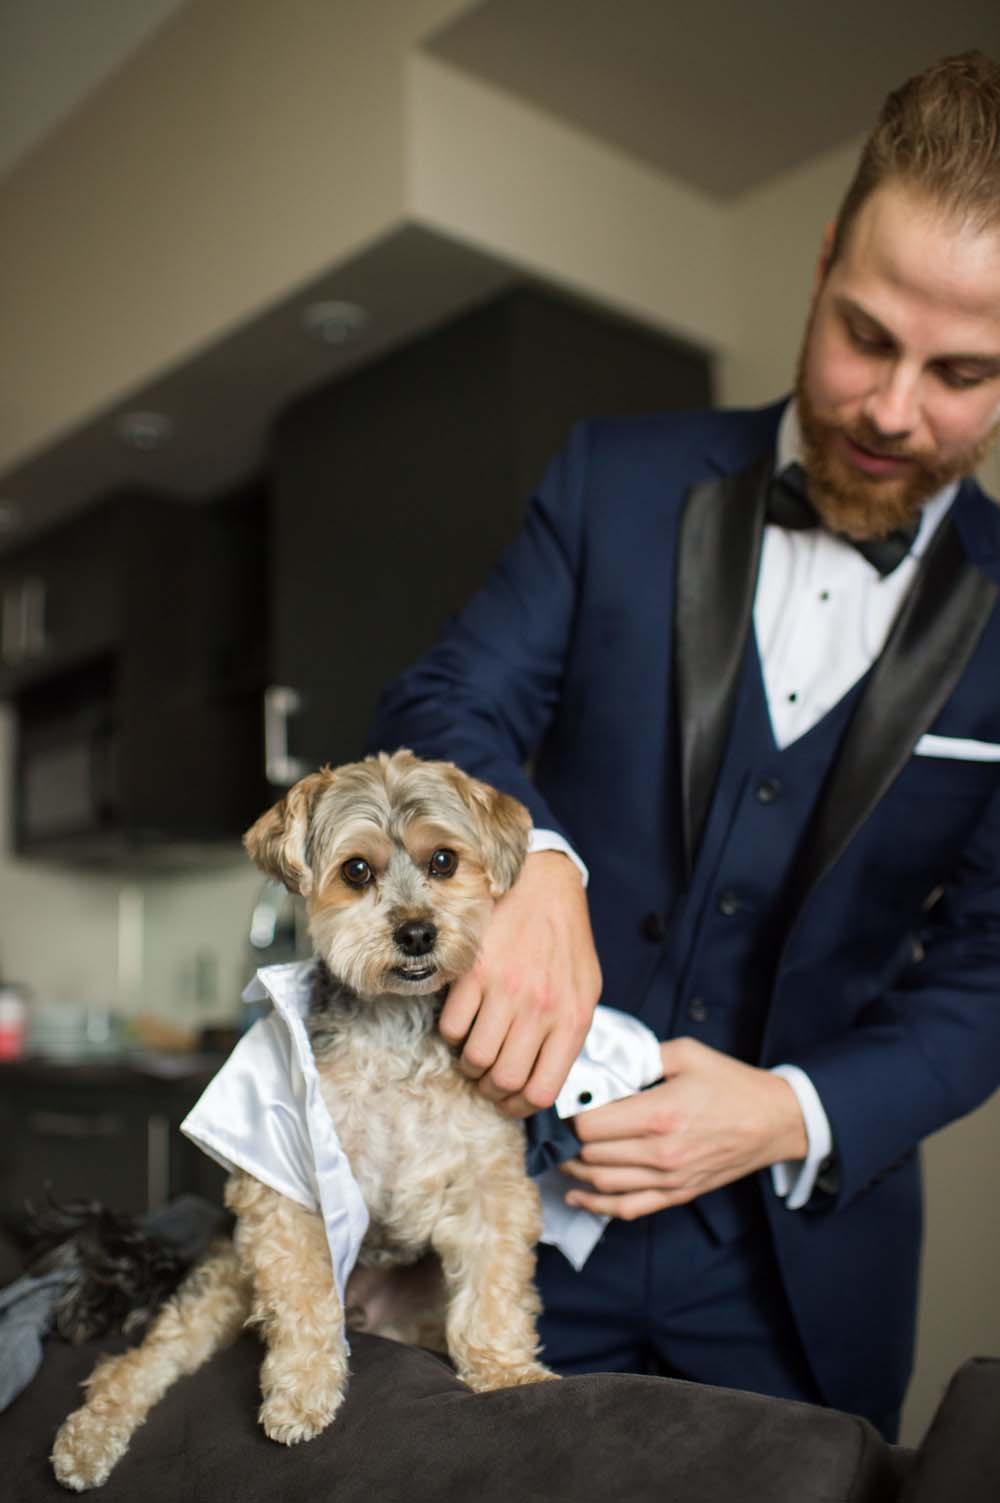 A Classic Vintage inspired Wedding at the One King West in Toronto - Groom and Dog